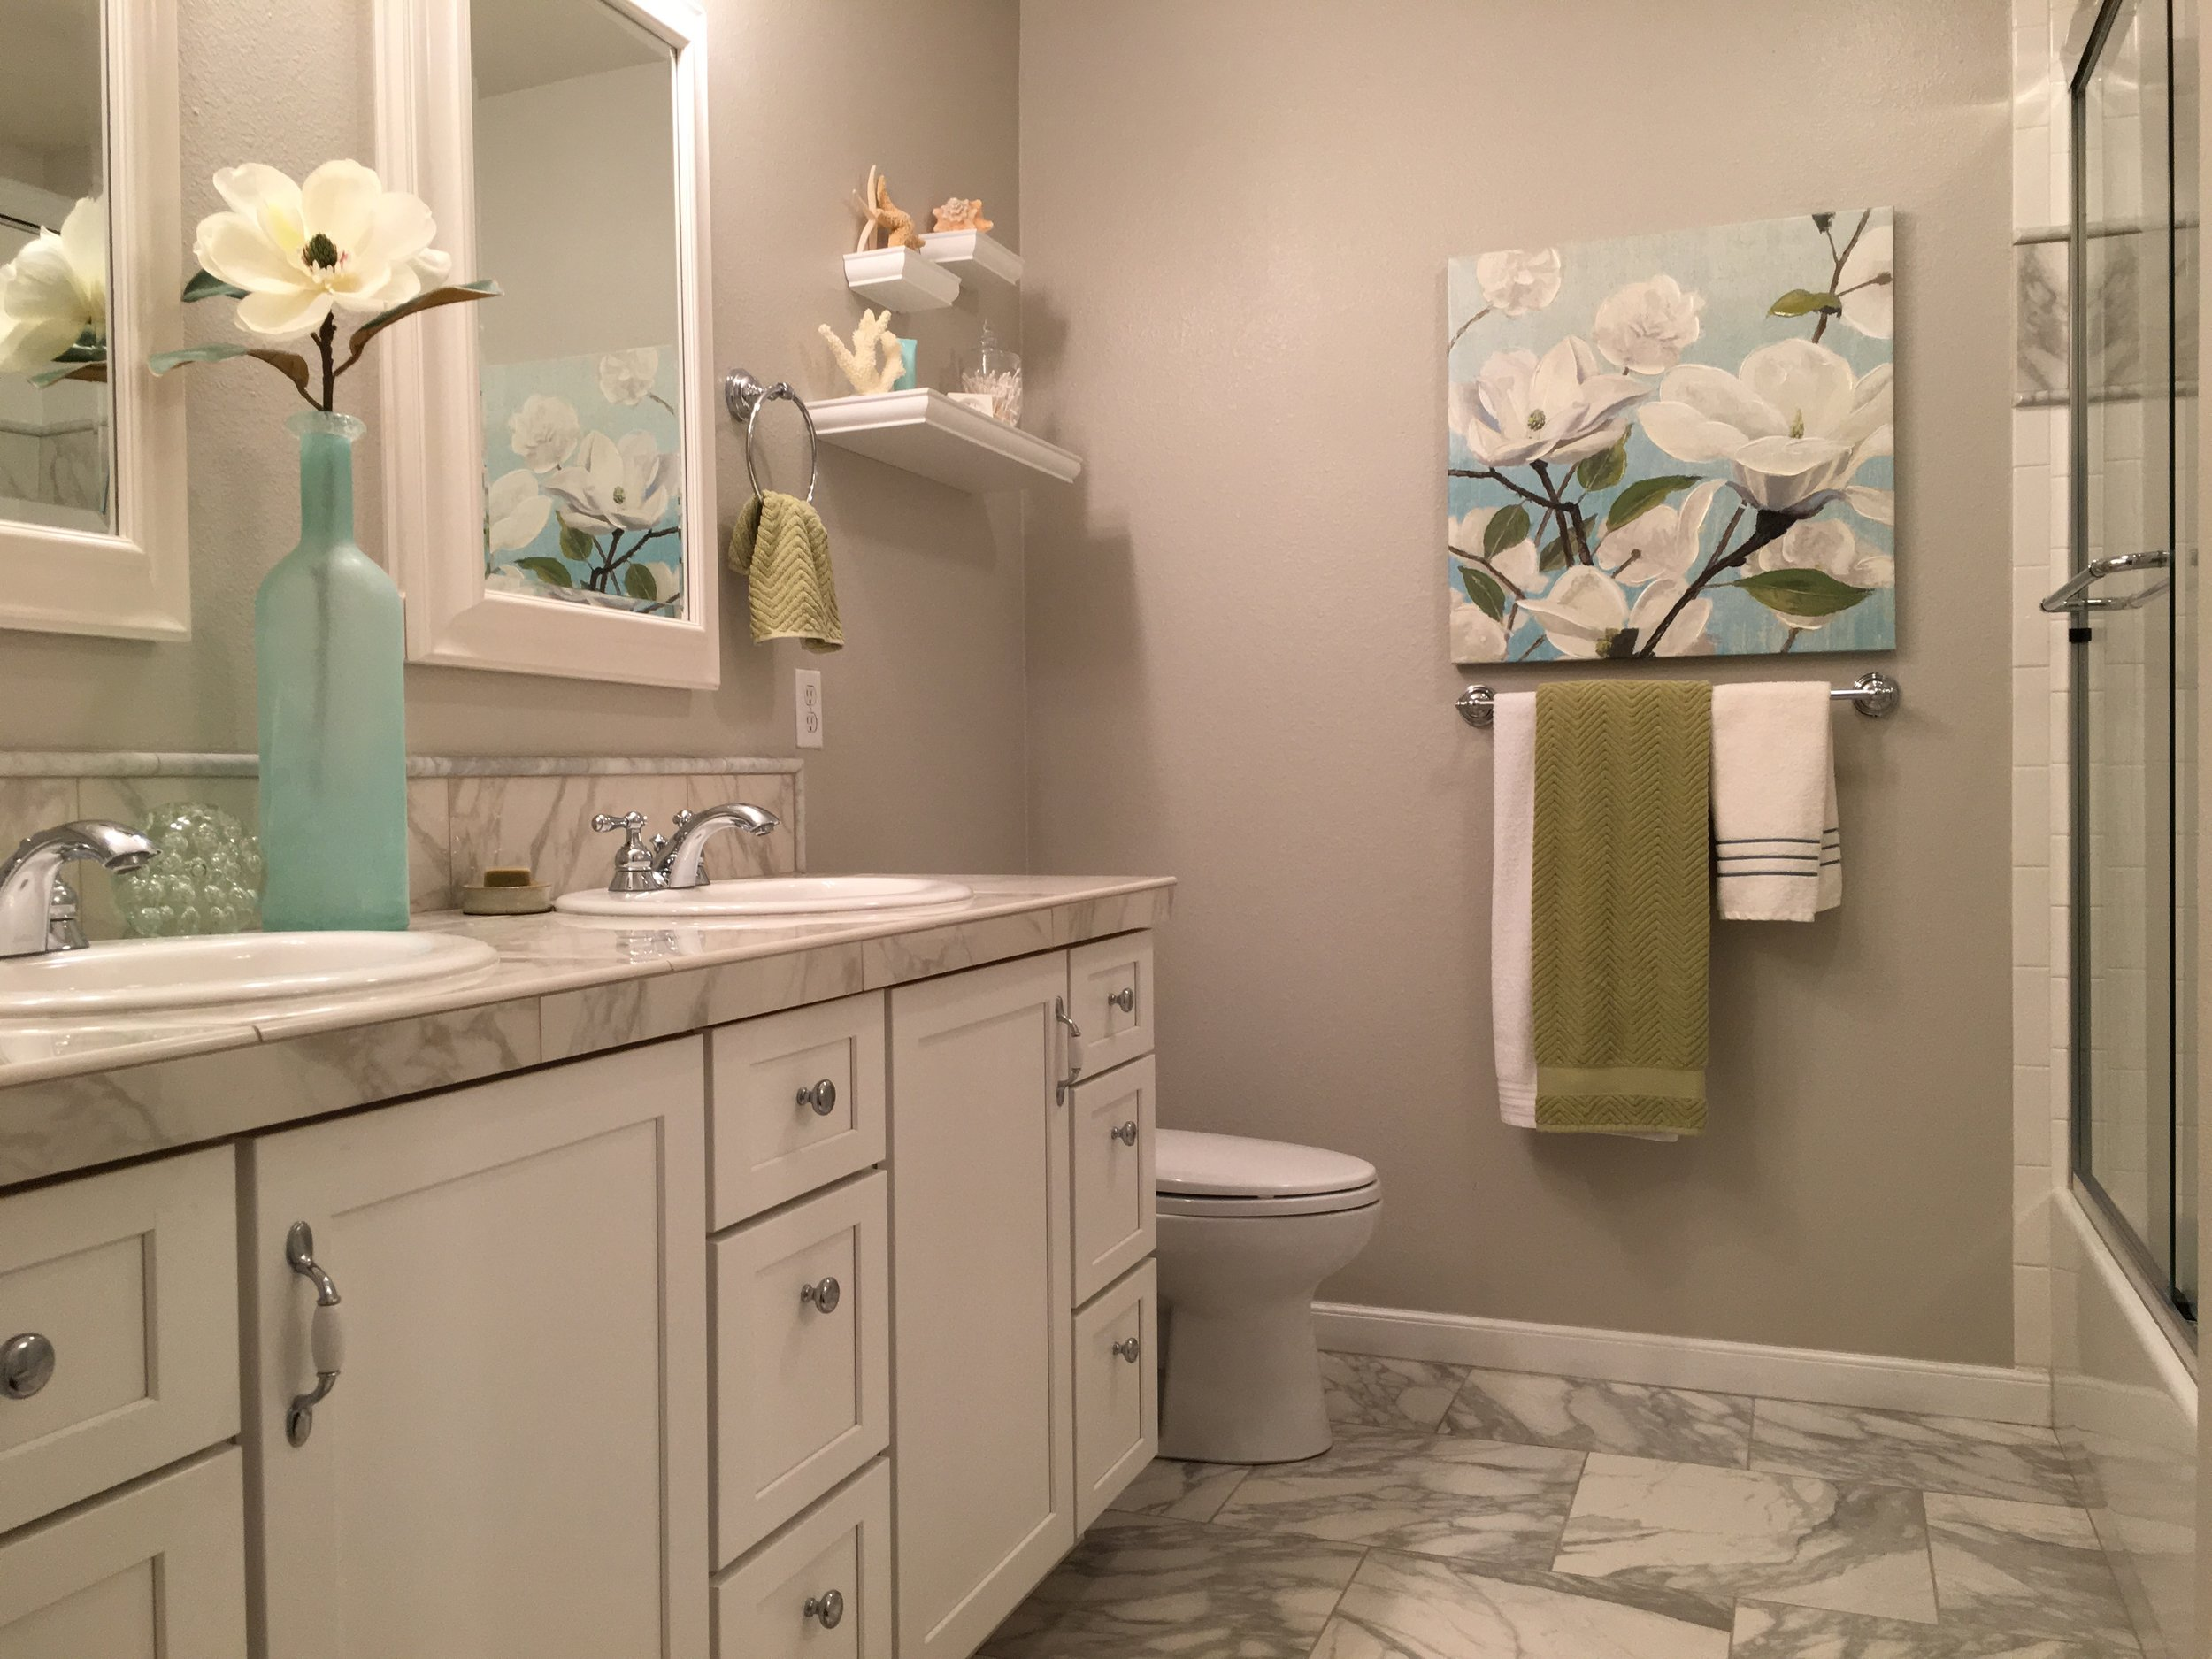 You can never go wrong with the classics -- a clean and fresh white/gray palette and a pop of color. White-painted shaker cabinetry combined with carrera marble tile accents will forever be in style.